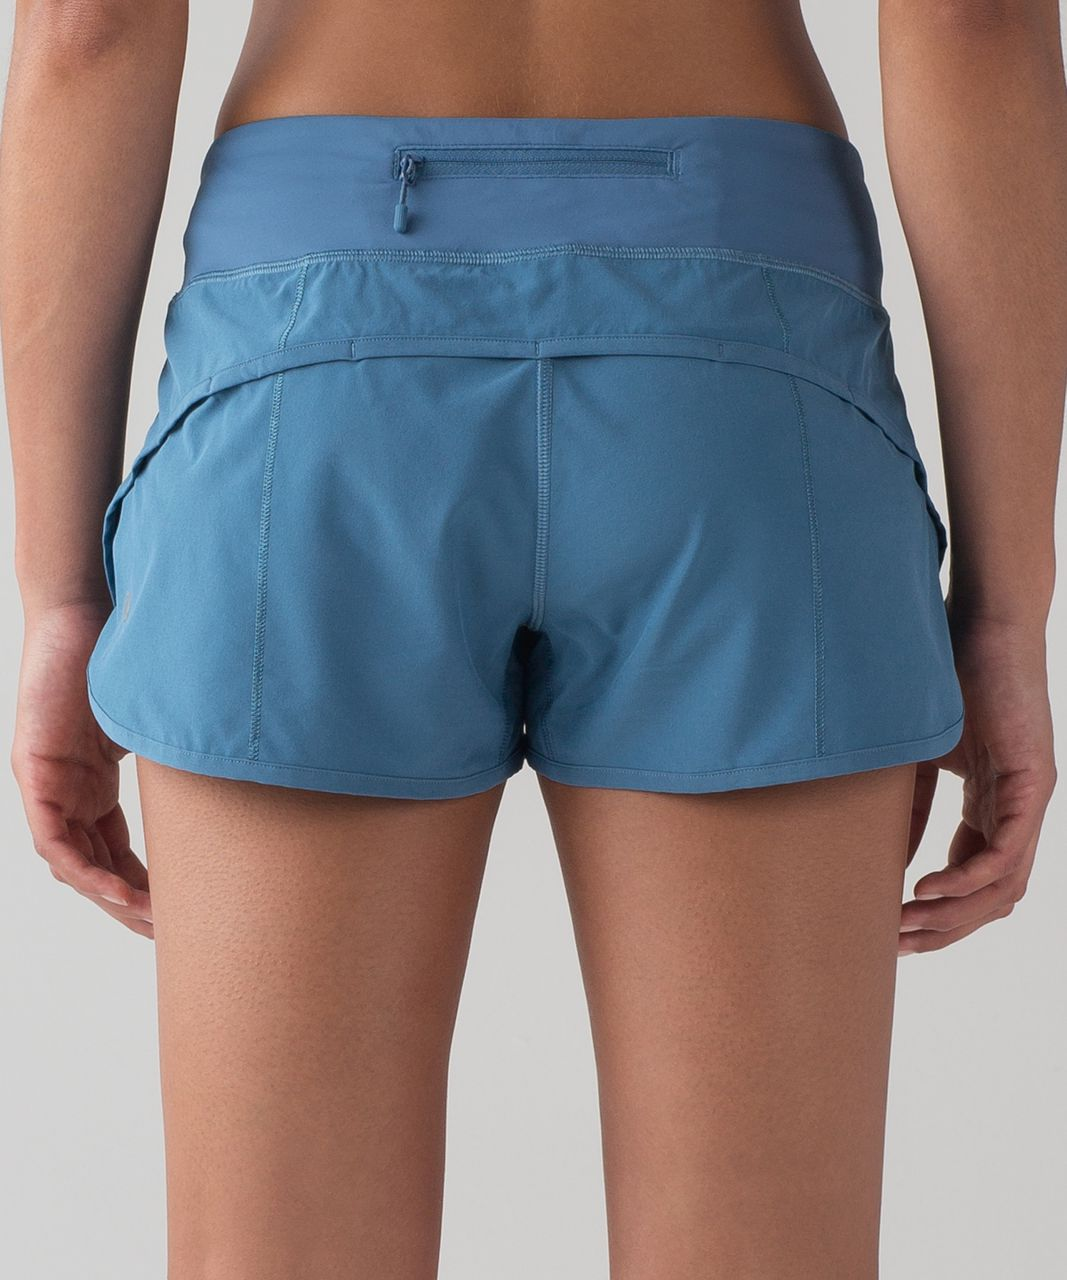 "Lululemon Speed Short (4-way Stretch 2 1/2"") - Illuminight"